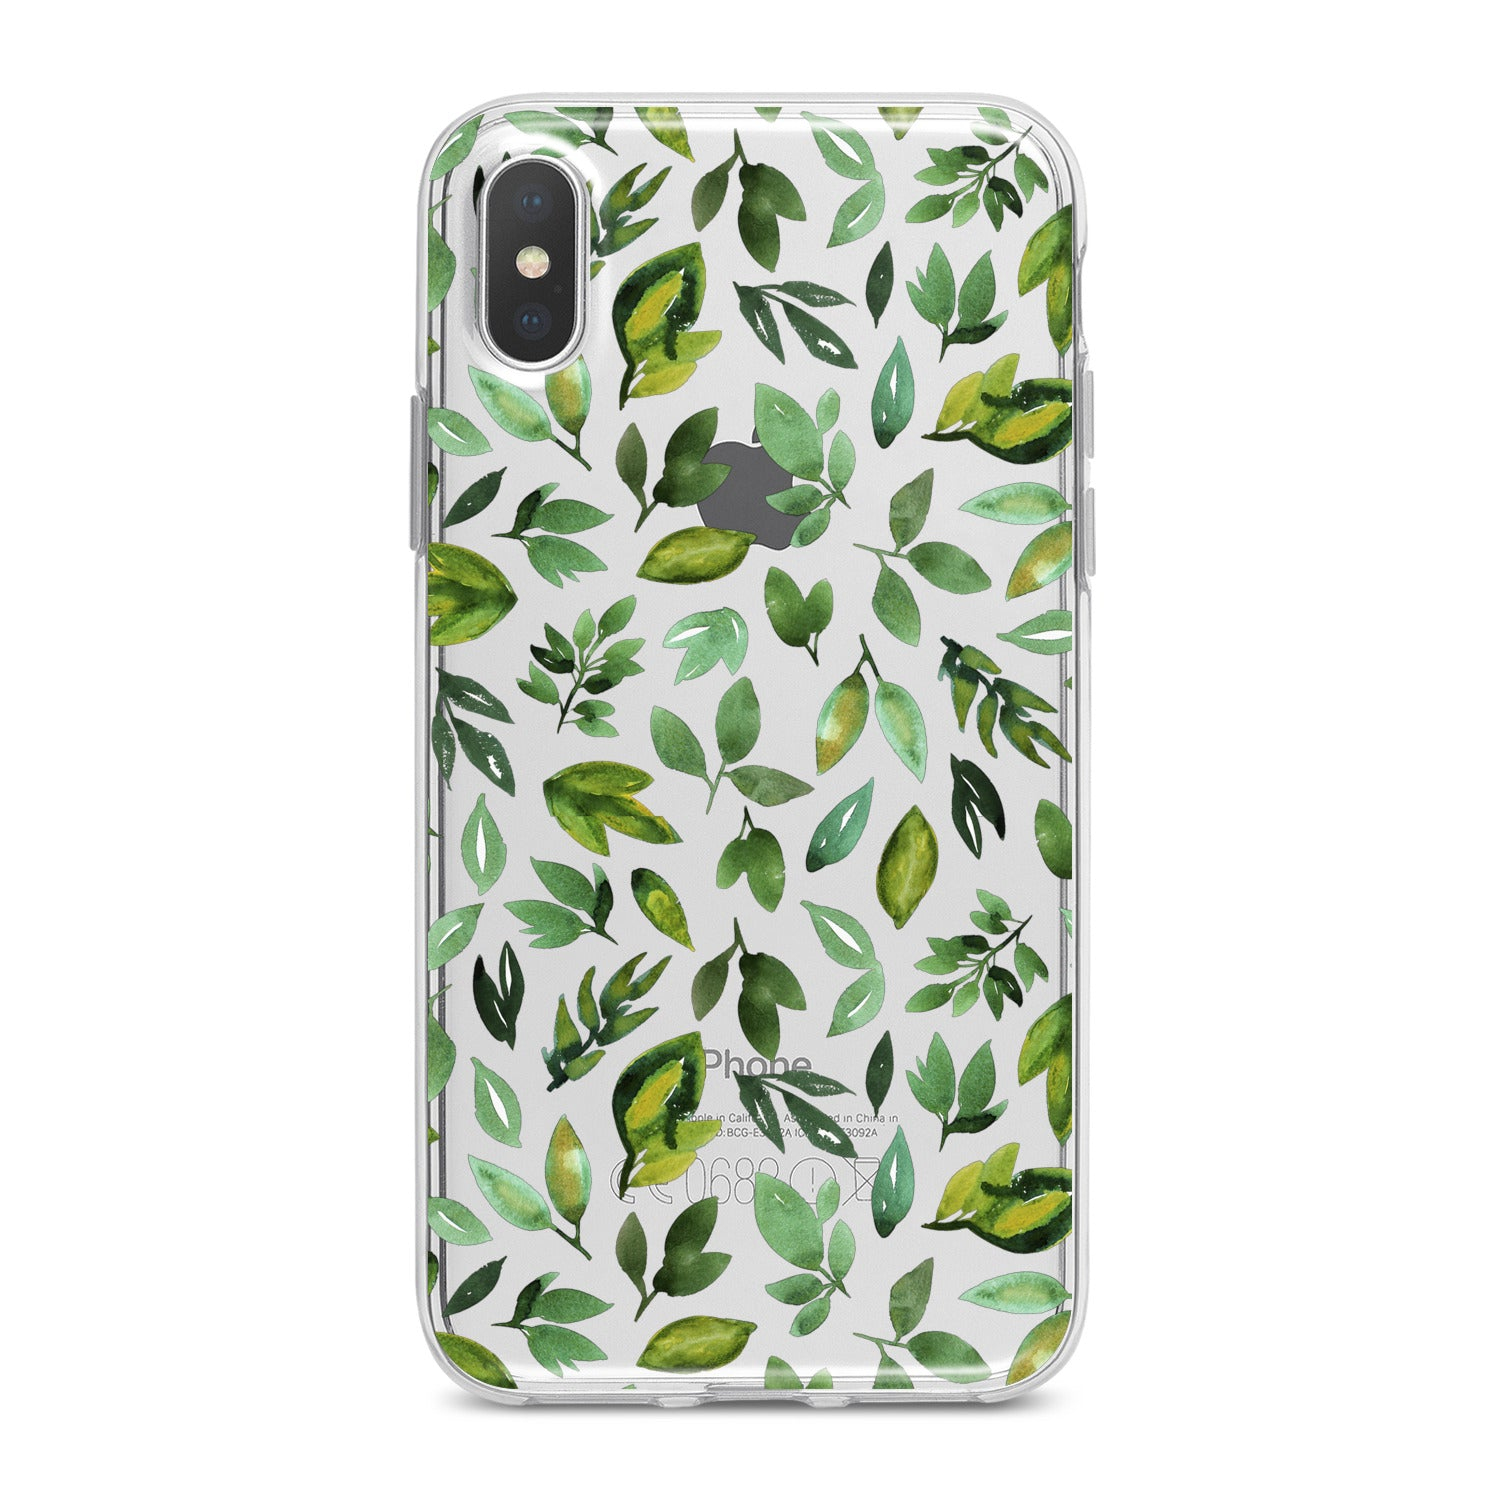 Lex Altern Simple Green Leaves Phone Case for your iPhone & Android phone.